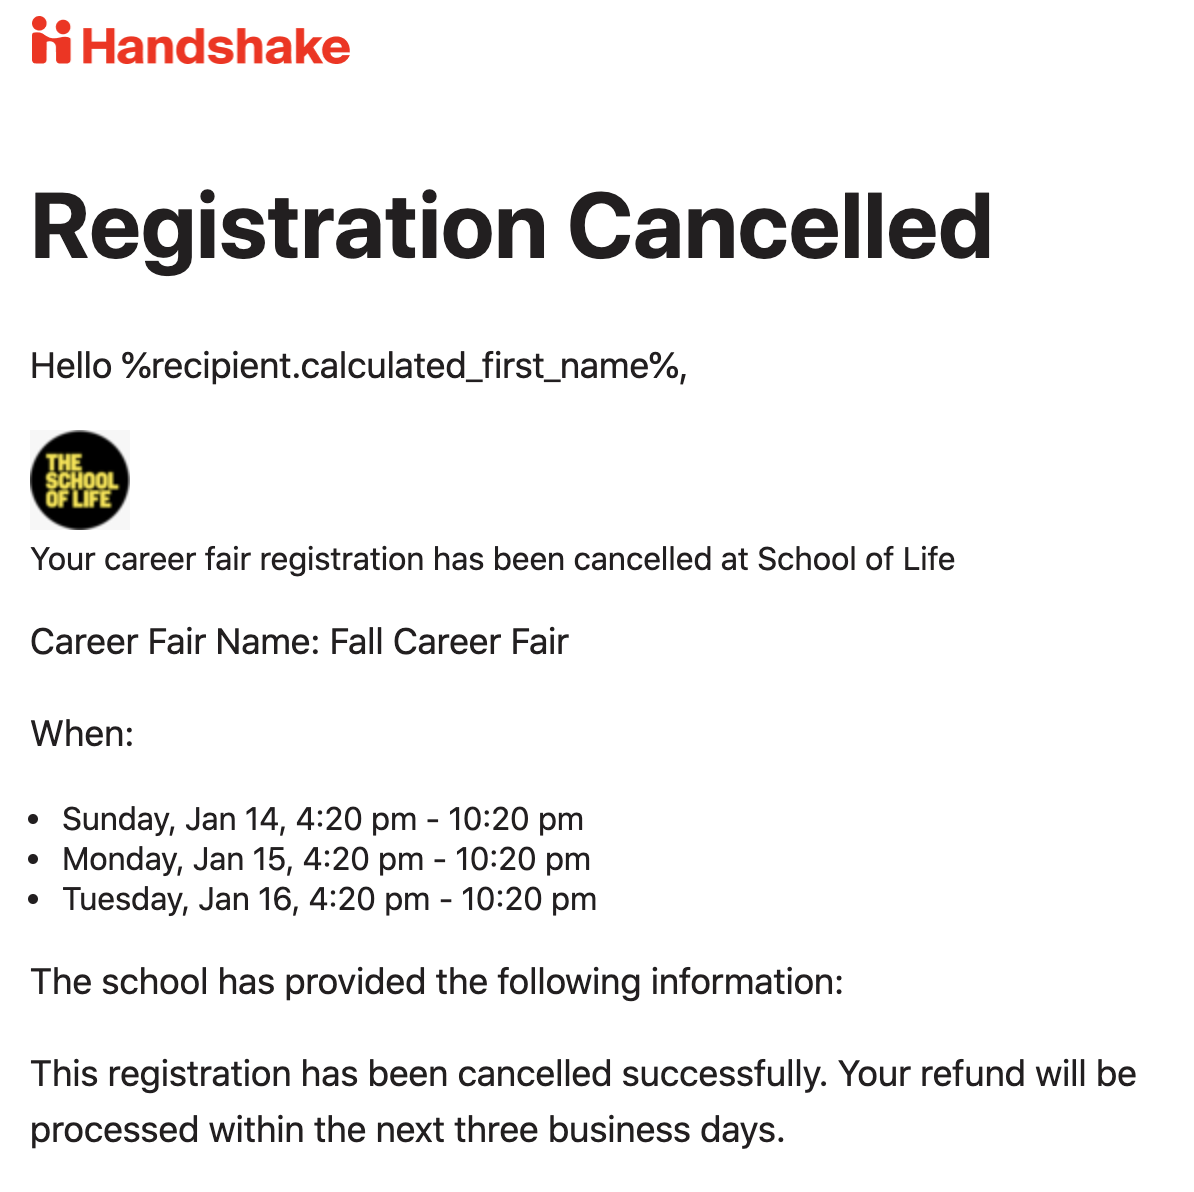 Career_Fair_Registration_at_School_of_Life_Cancelled.png